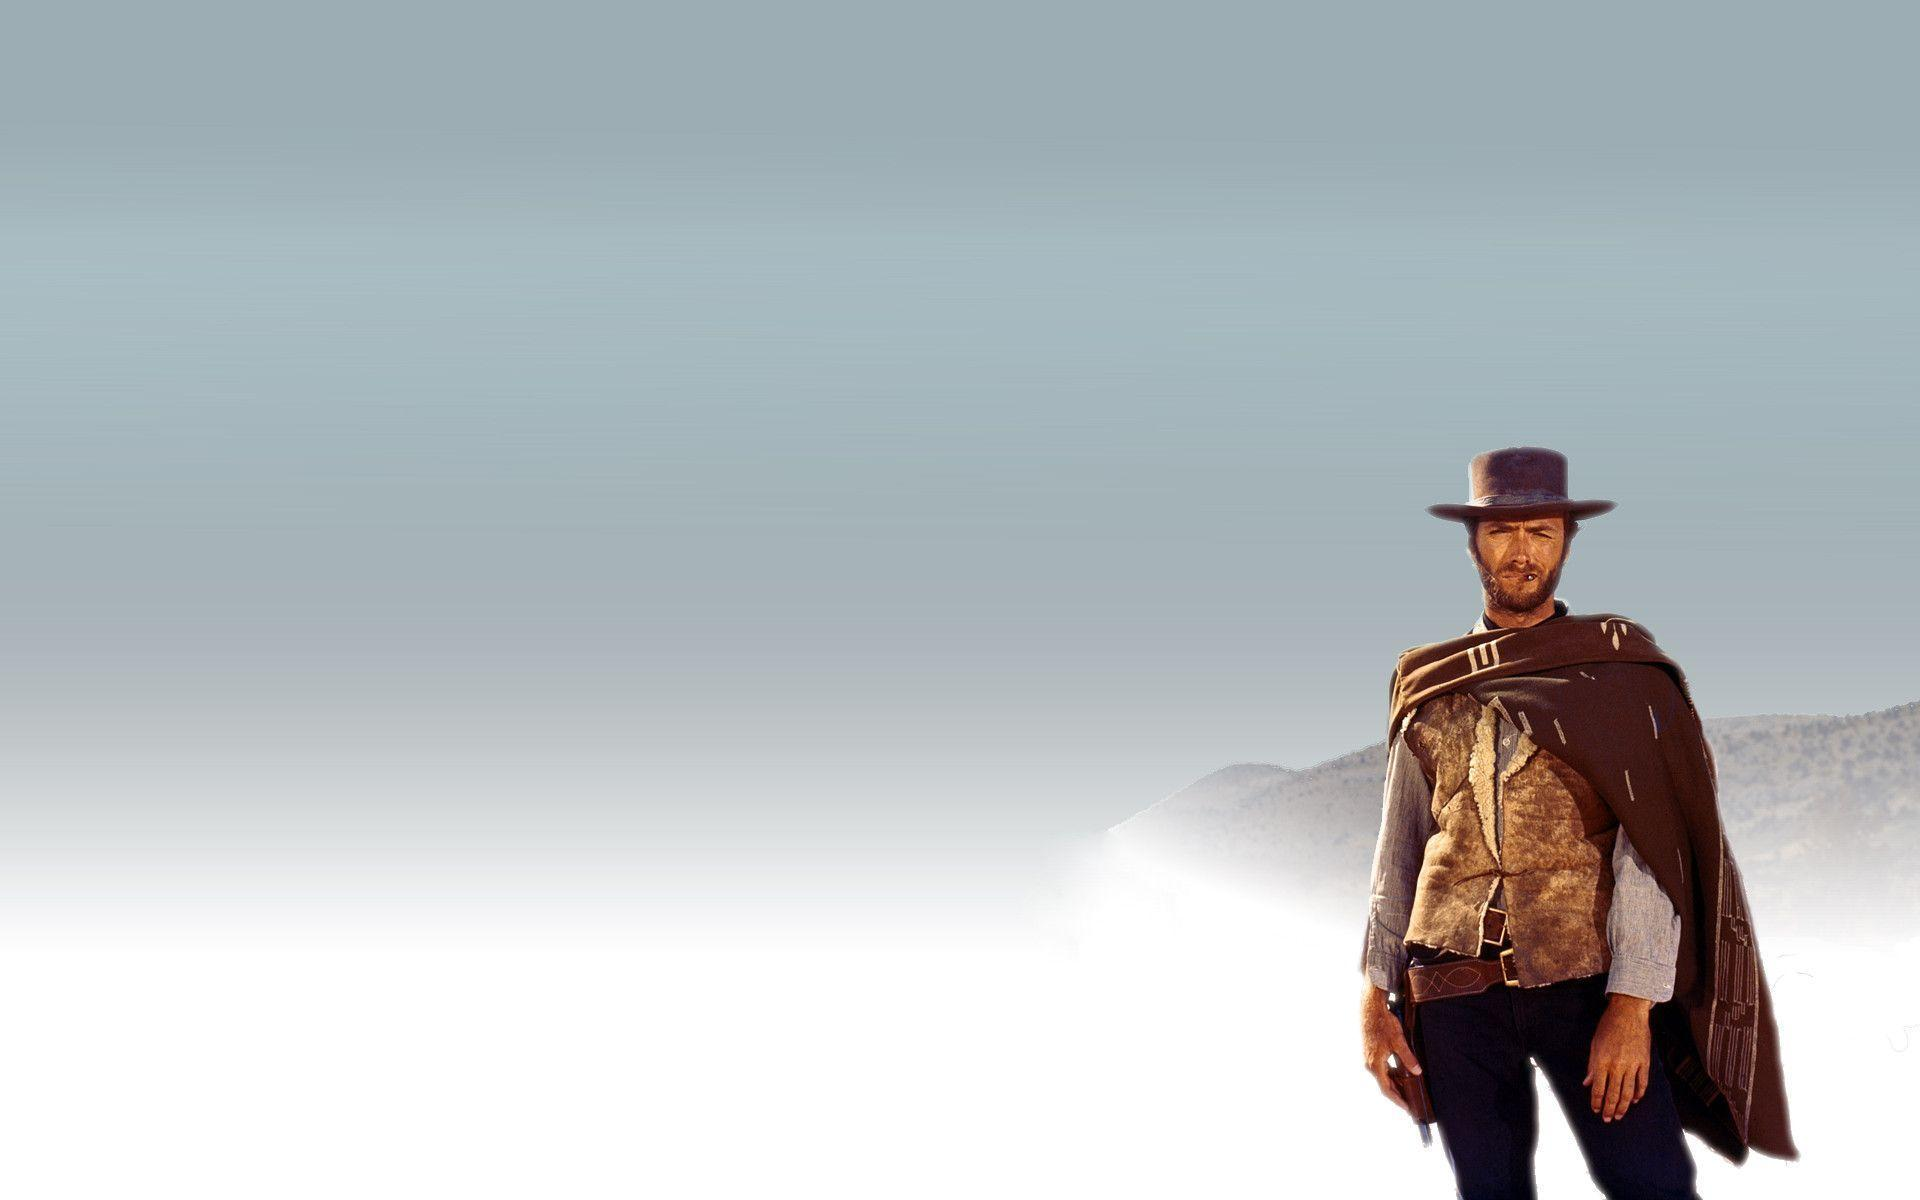 Clint Eastwood Wallpapers Top Free Clint Eastwood Backgrounds